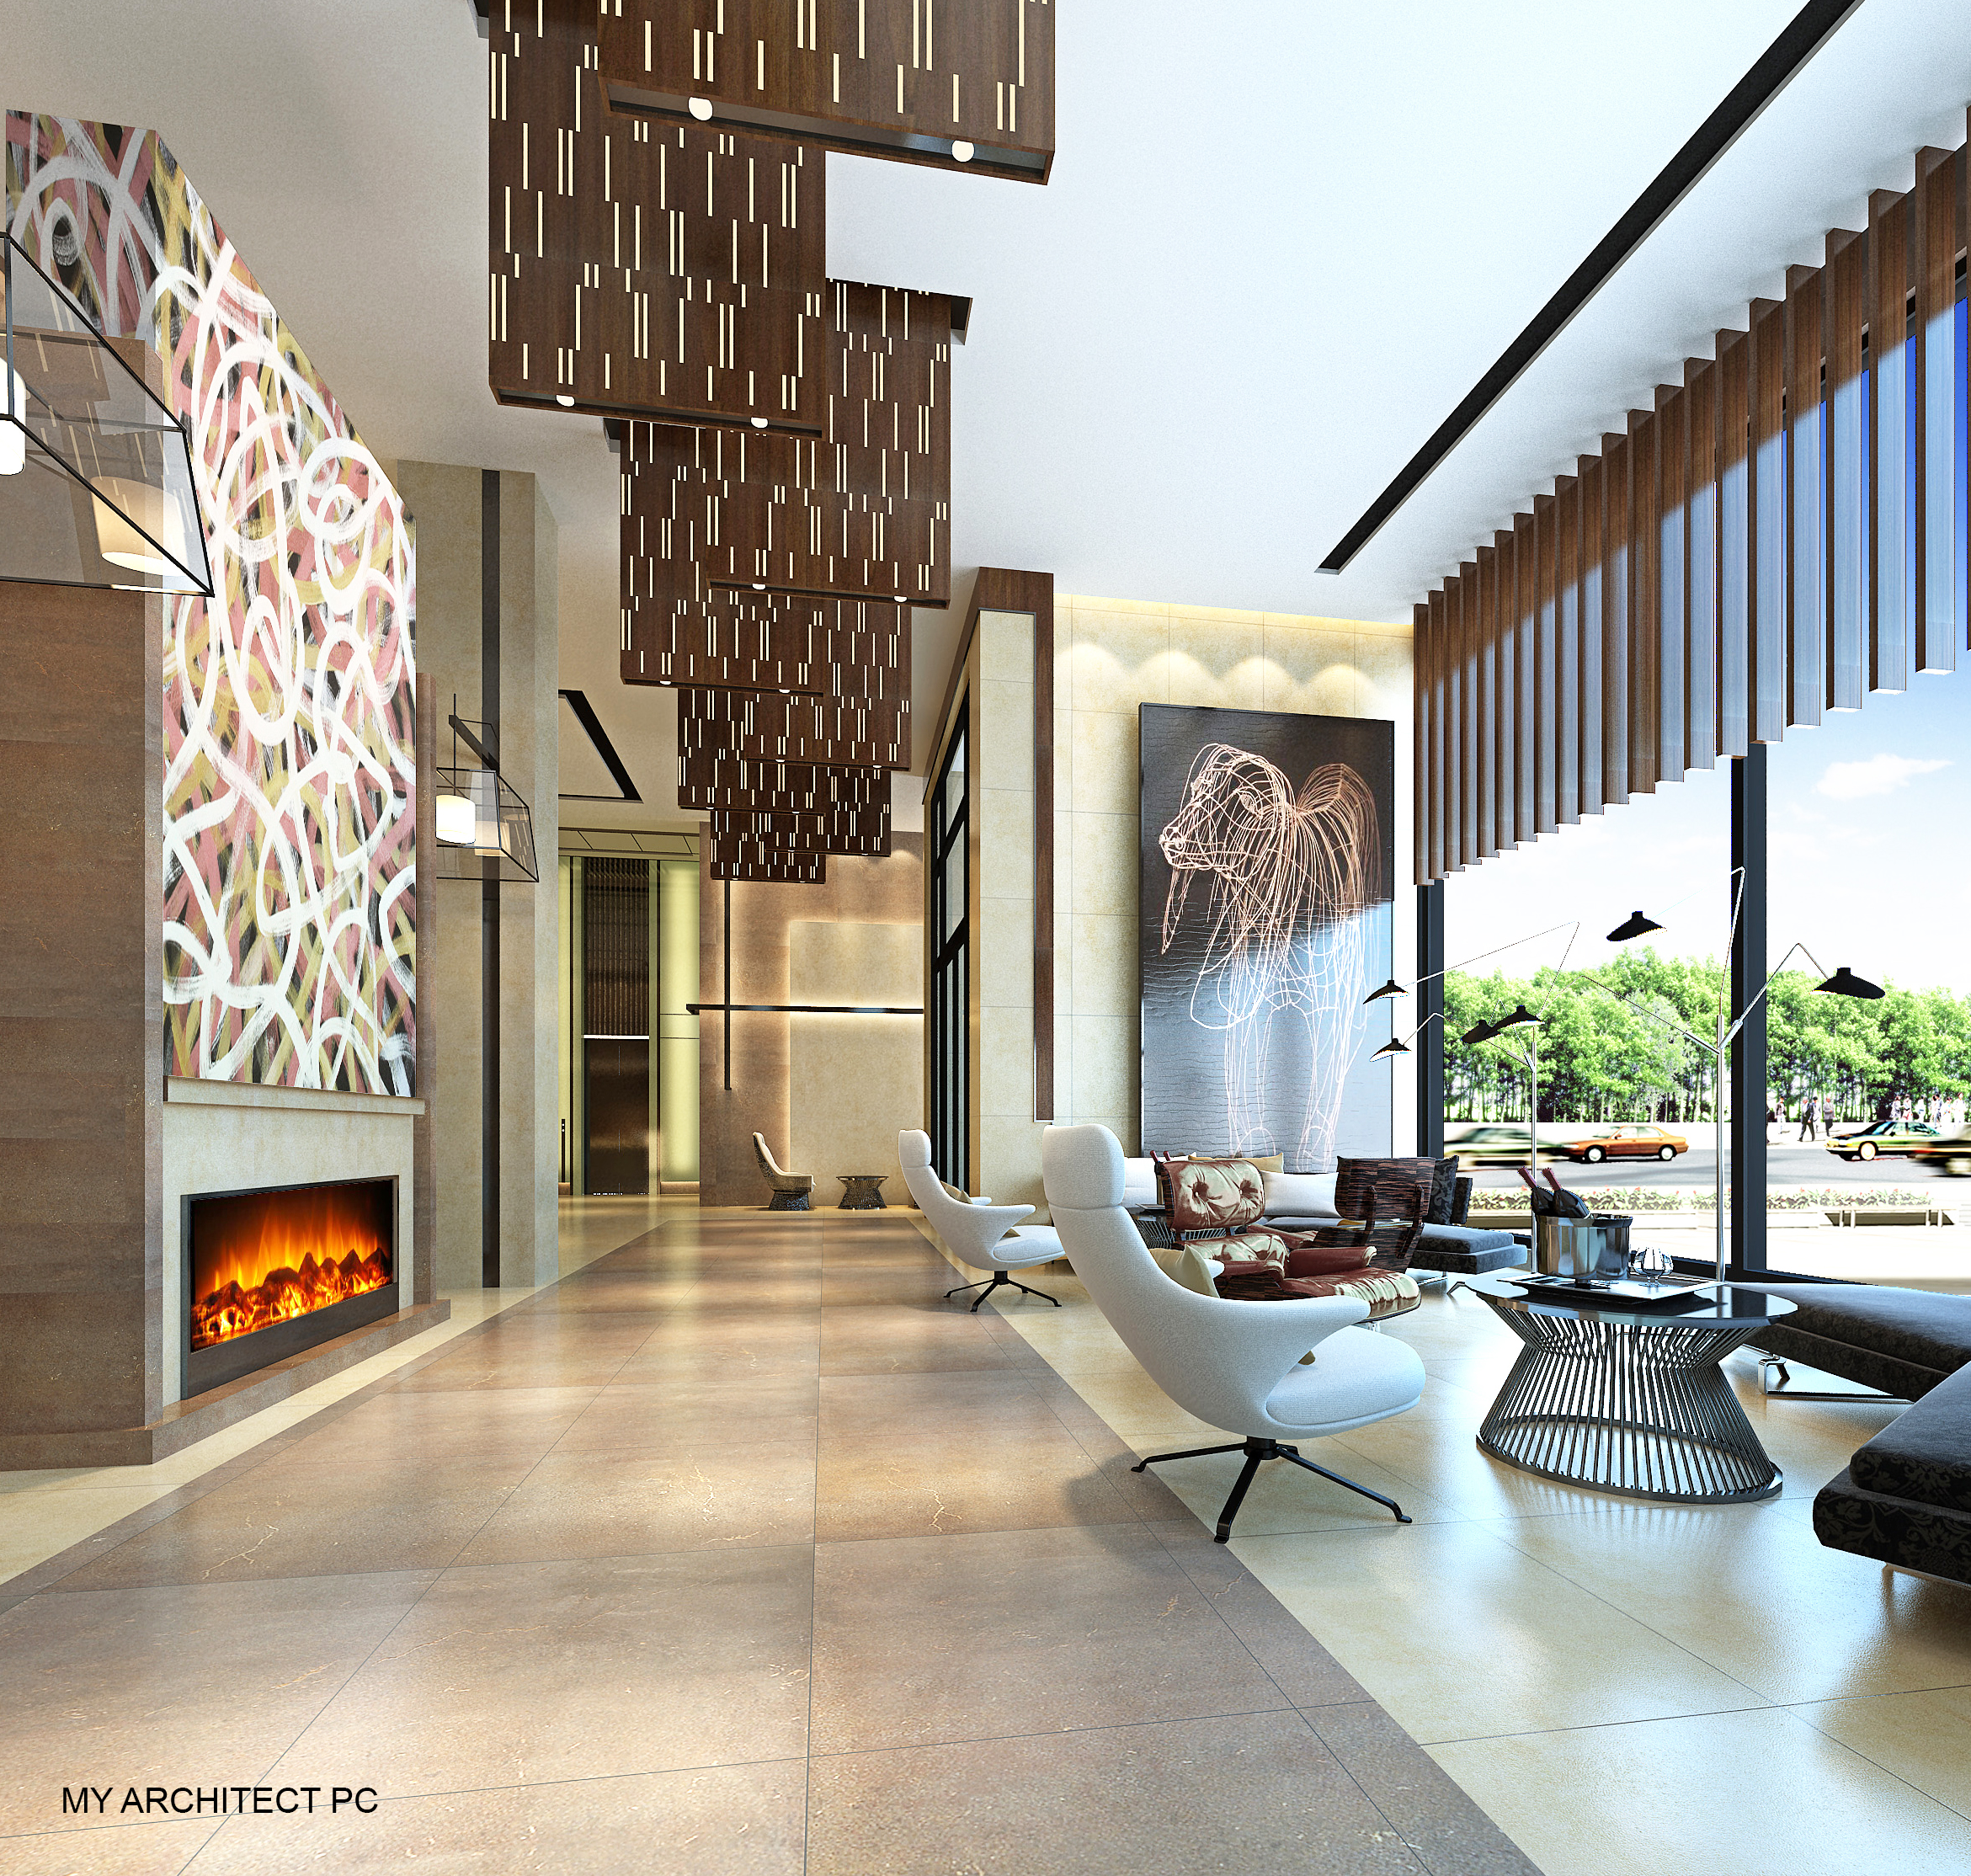 Lobby of 134-03 35th Avenue, rendering by My Architect